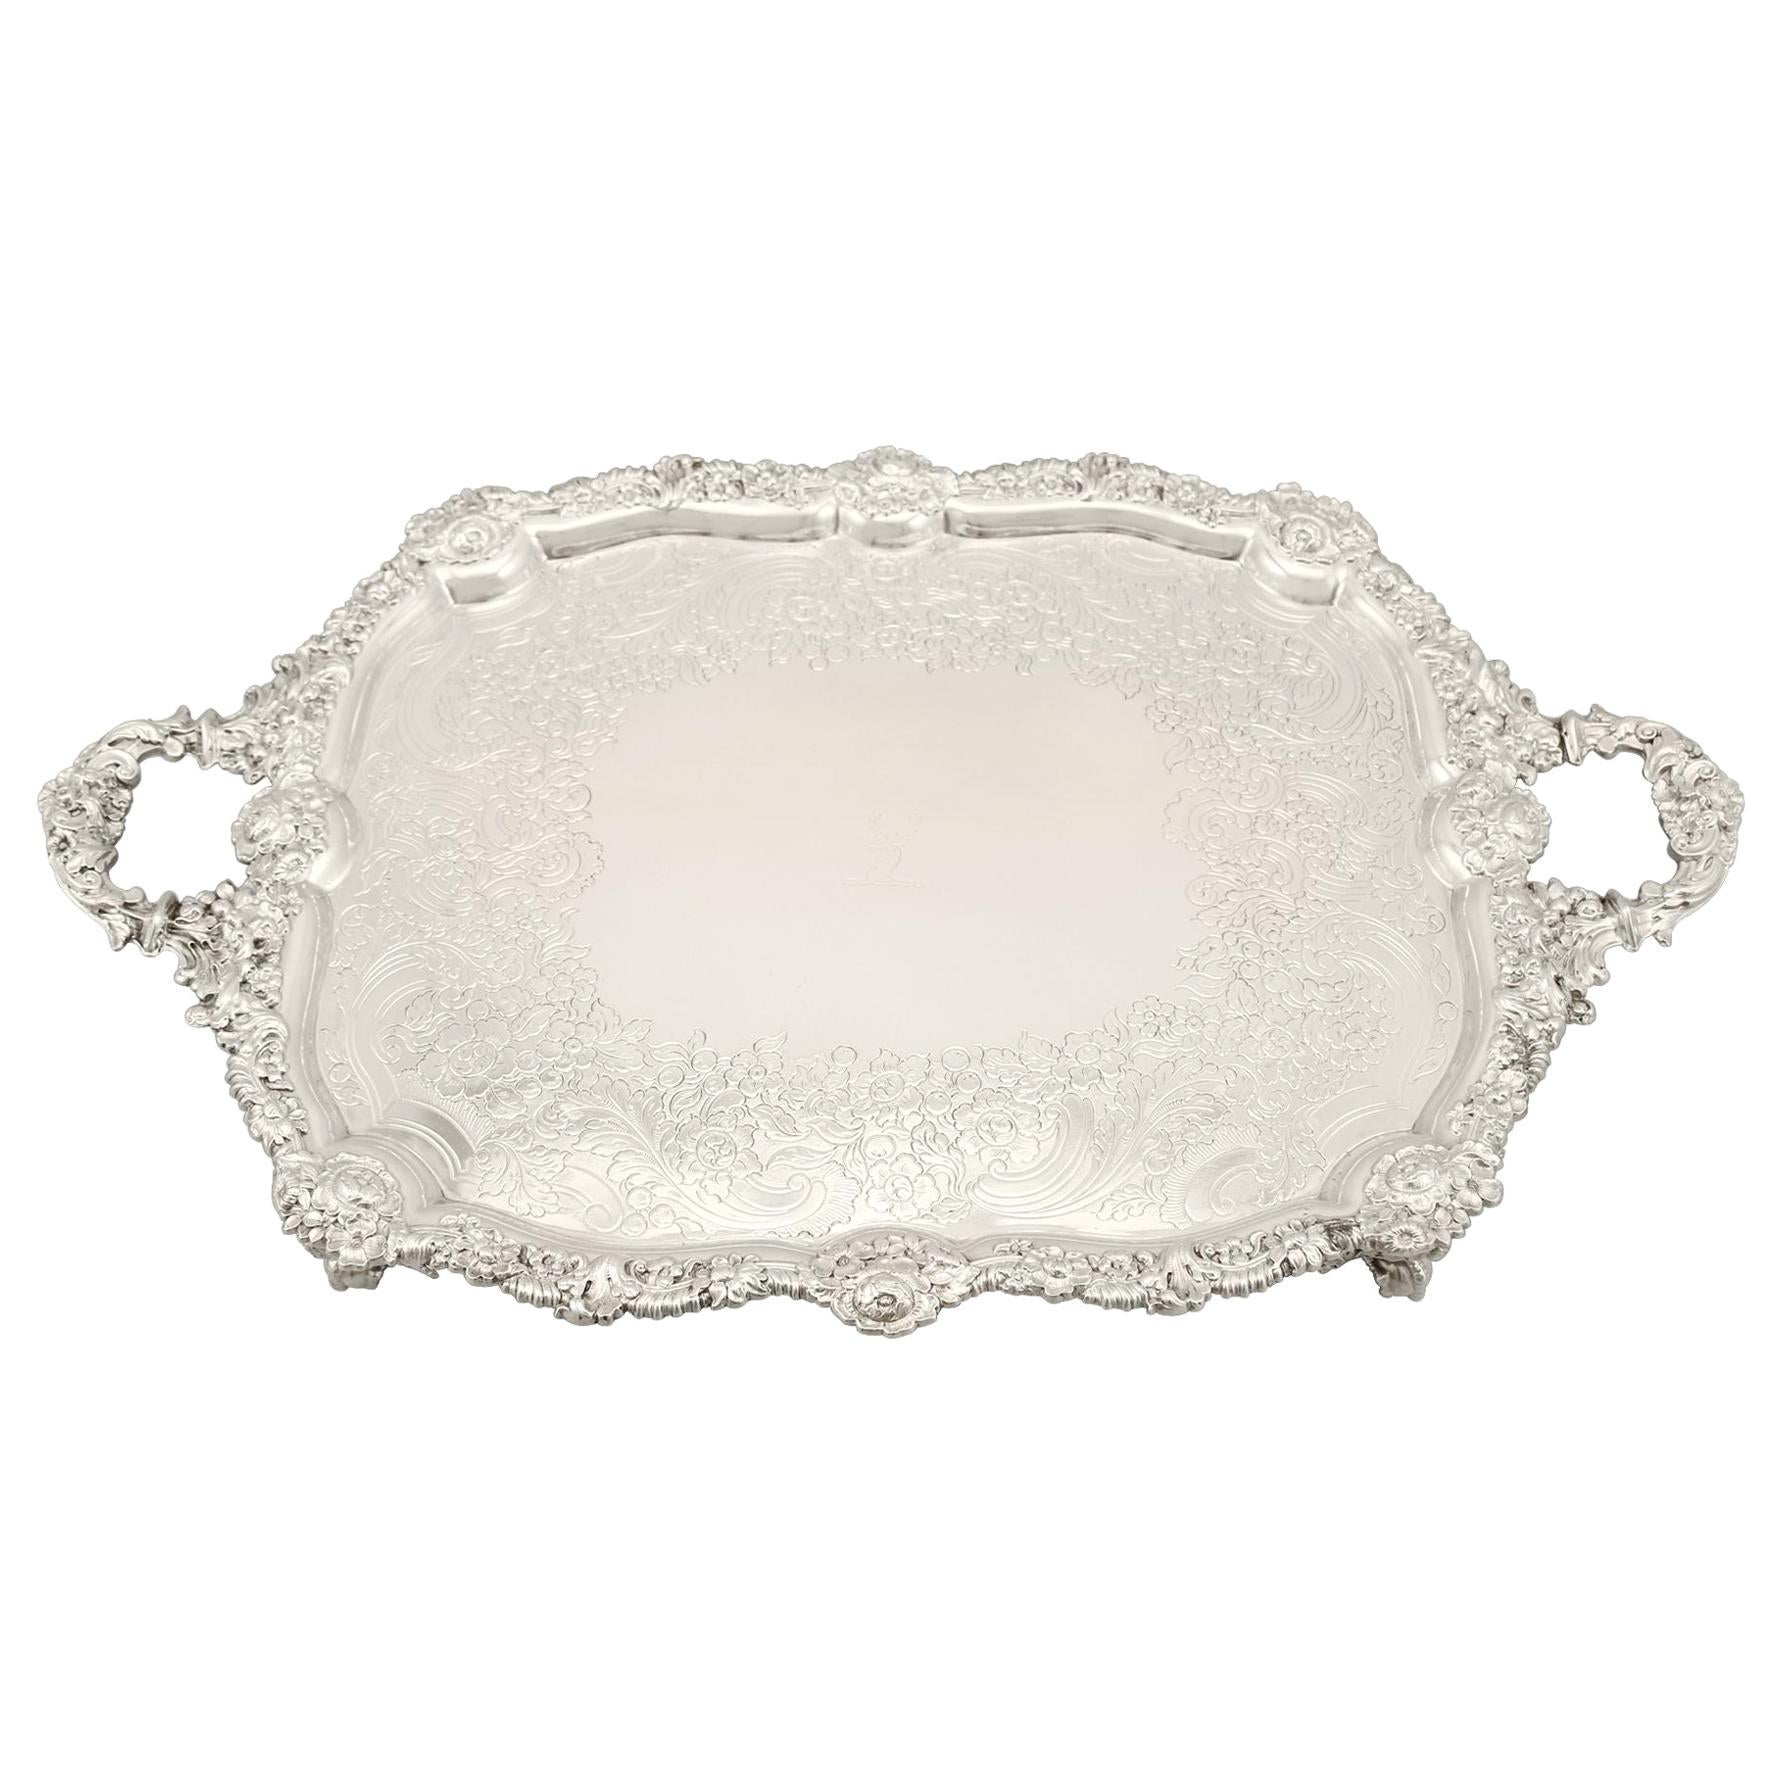 19th Century Antique Sterling Silver Tea Tray 1824